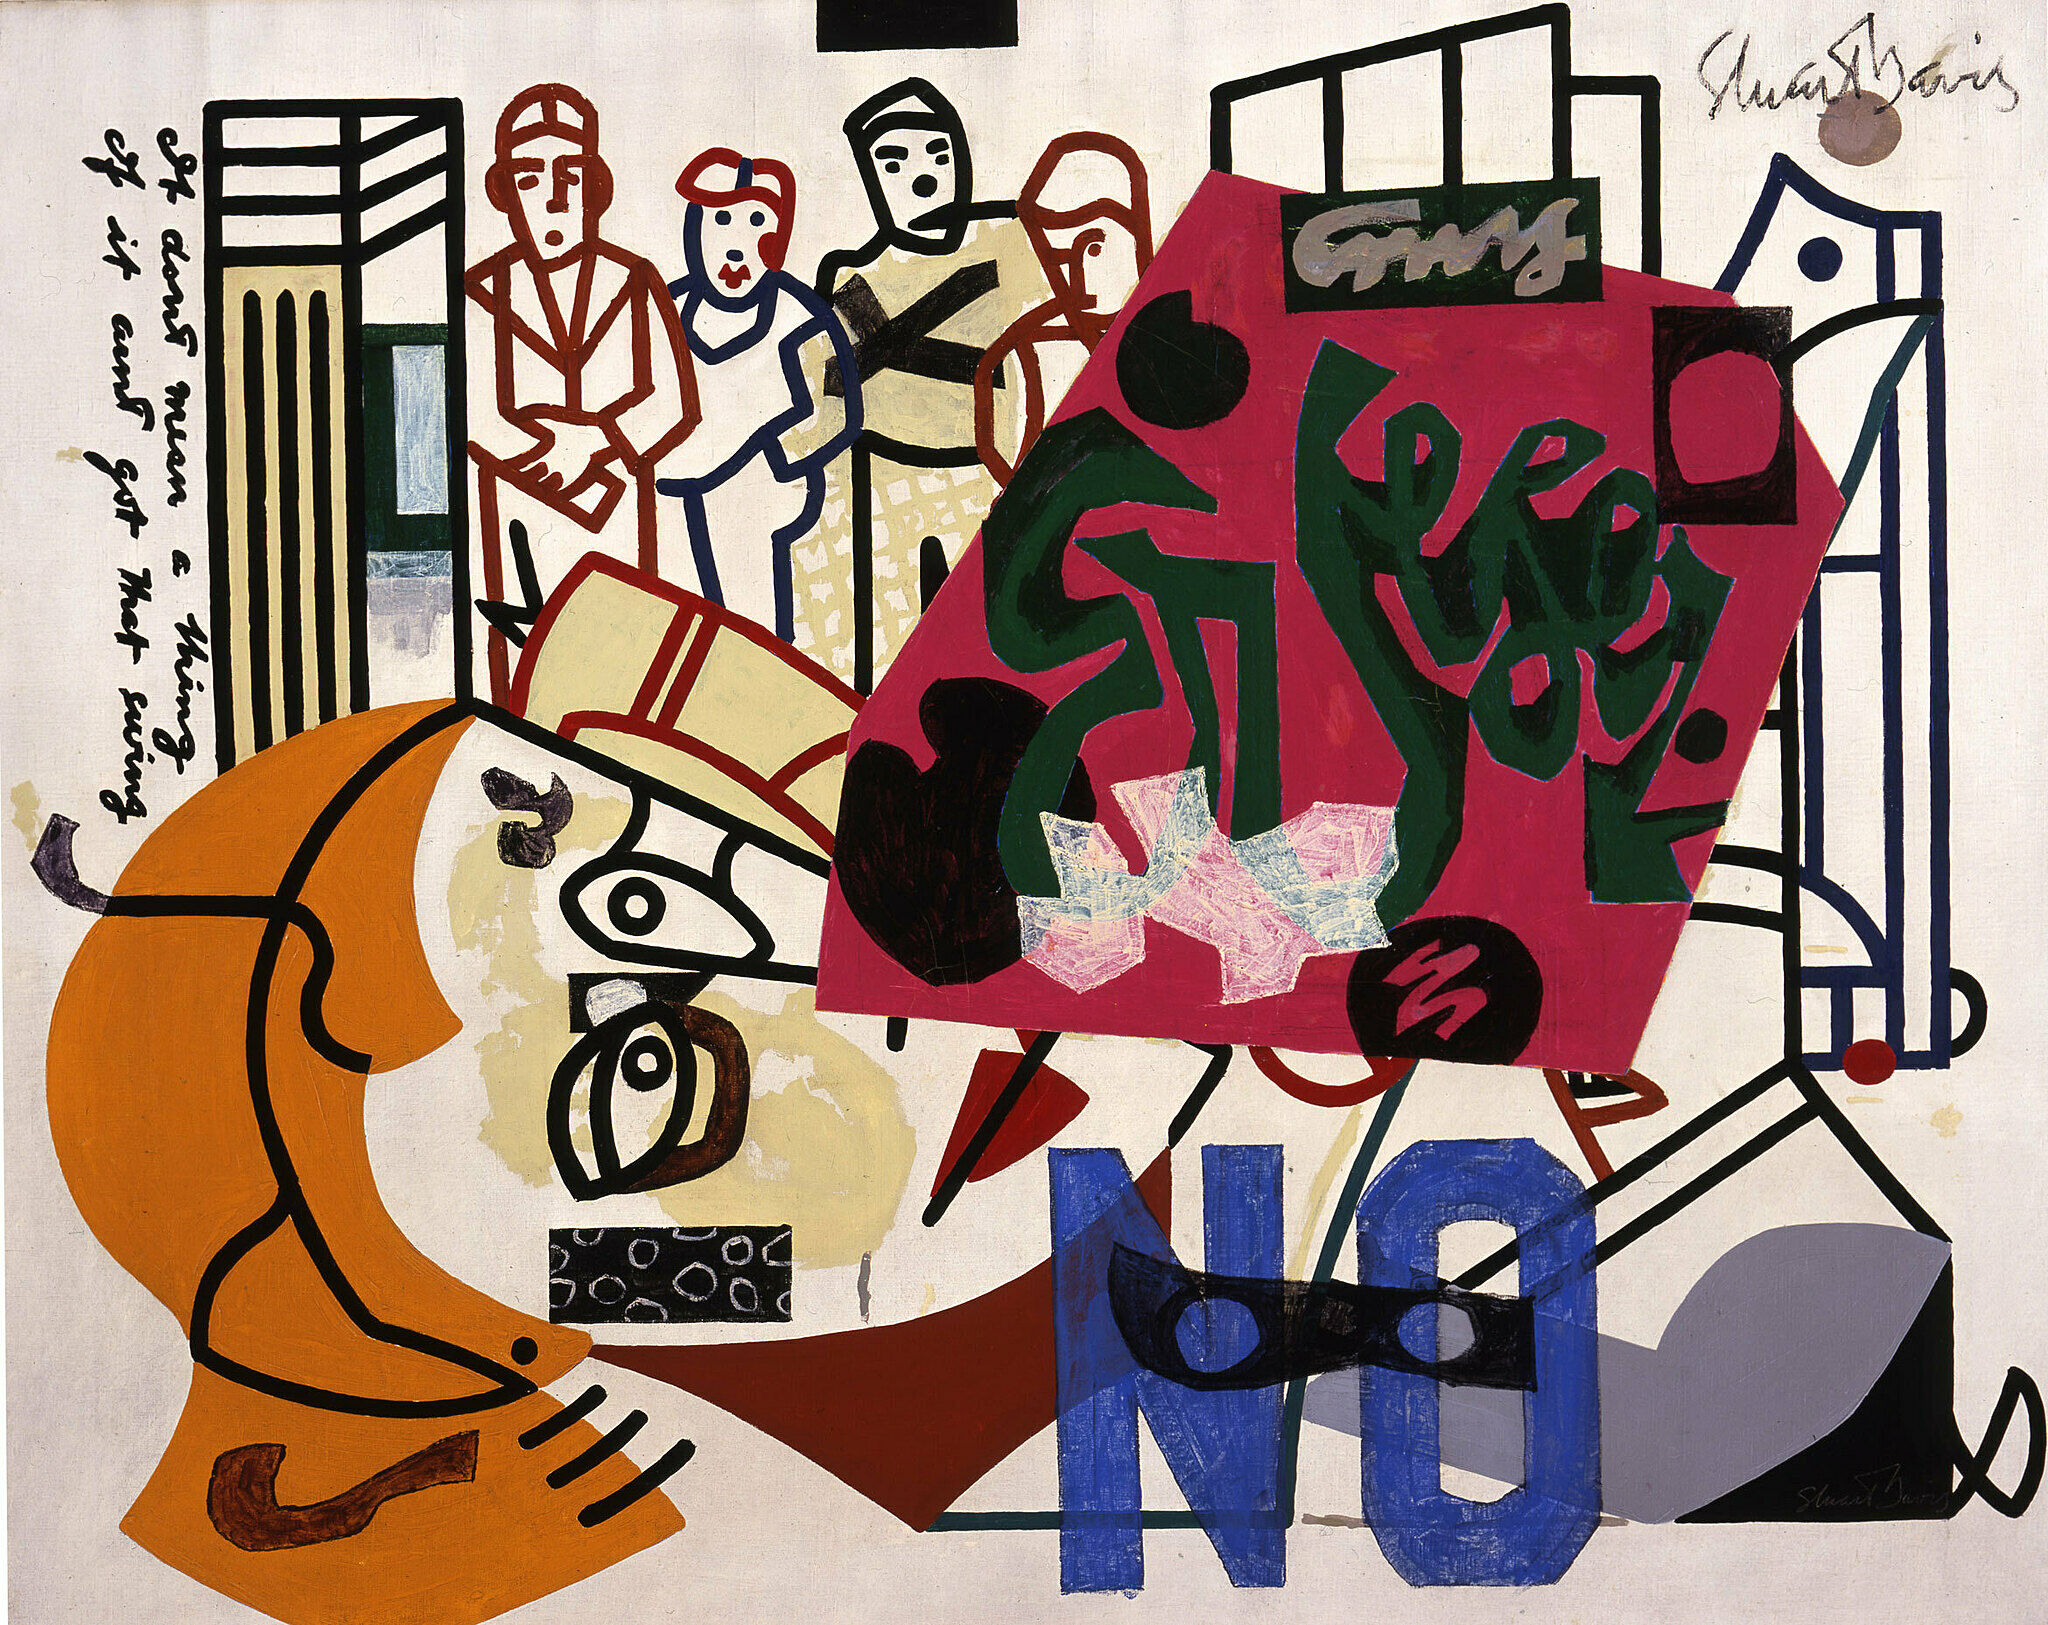 A work by Stuart Davis depicts a figurative and abstract scene